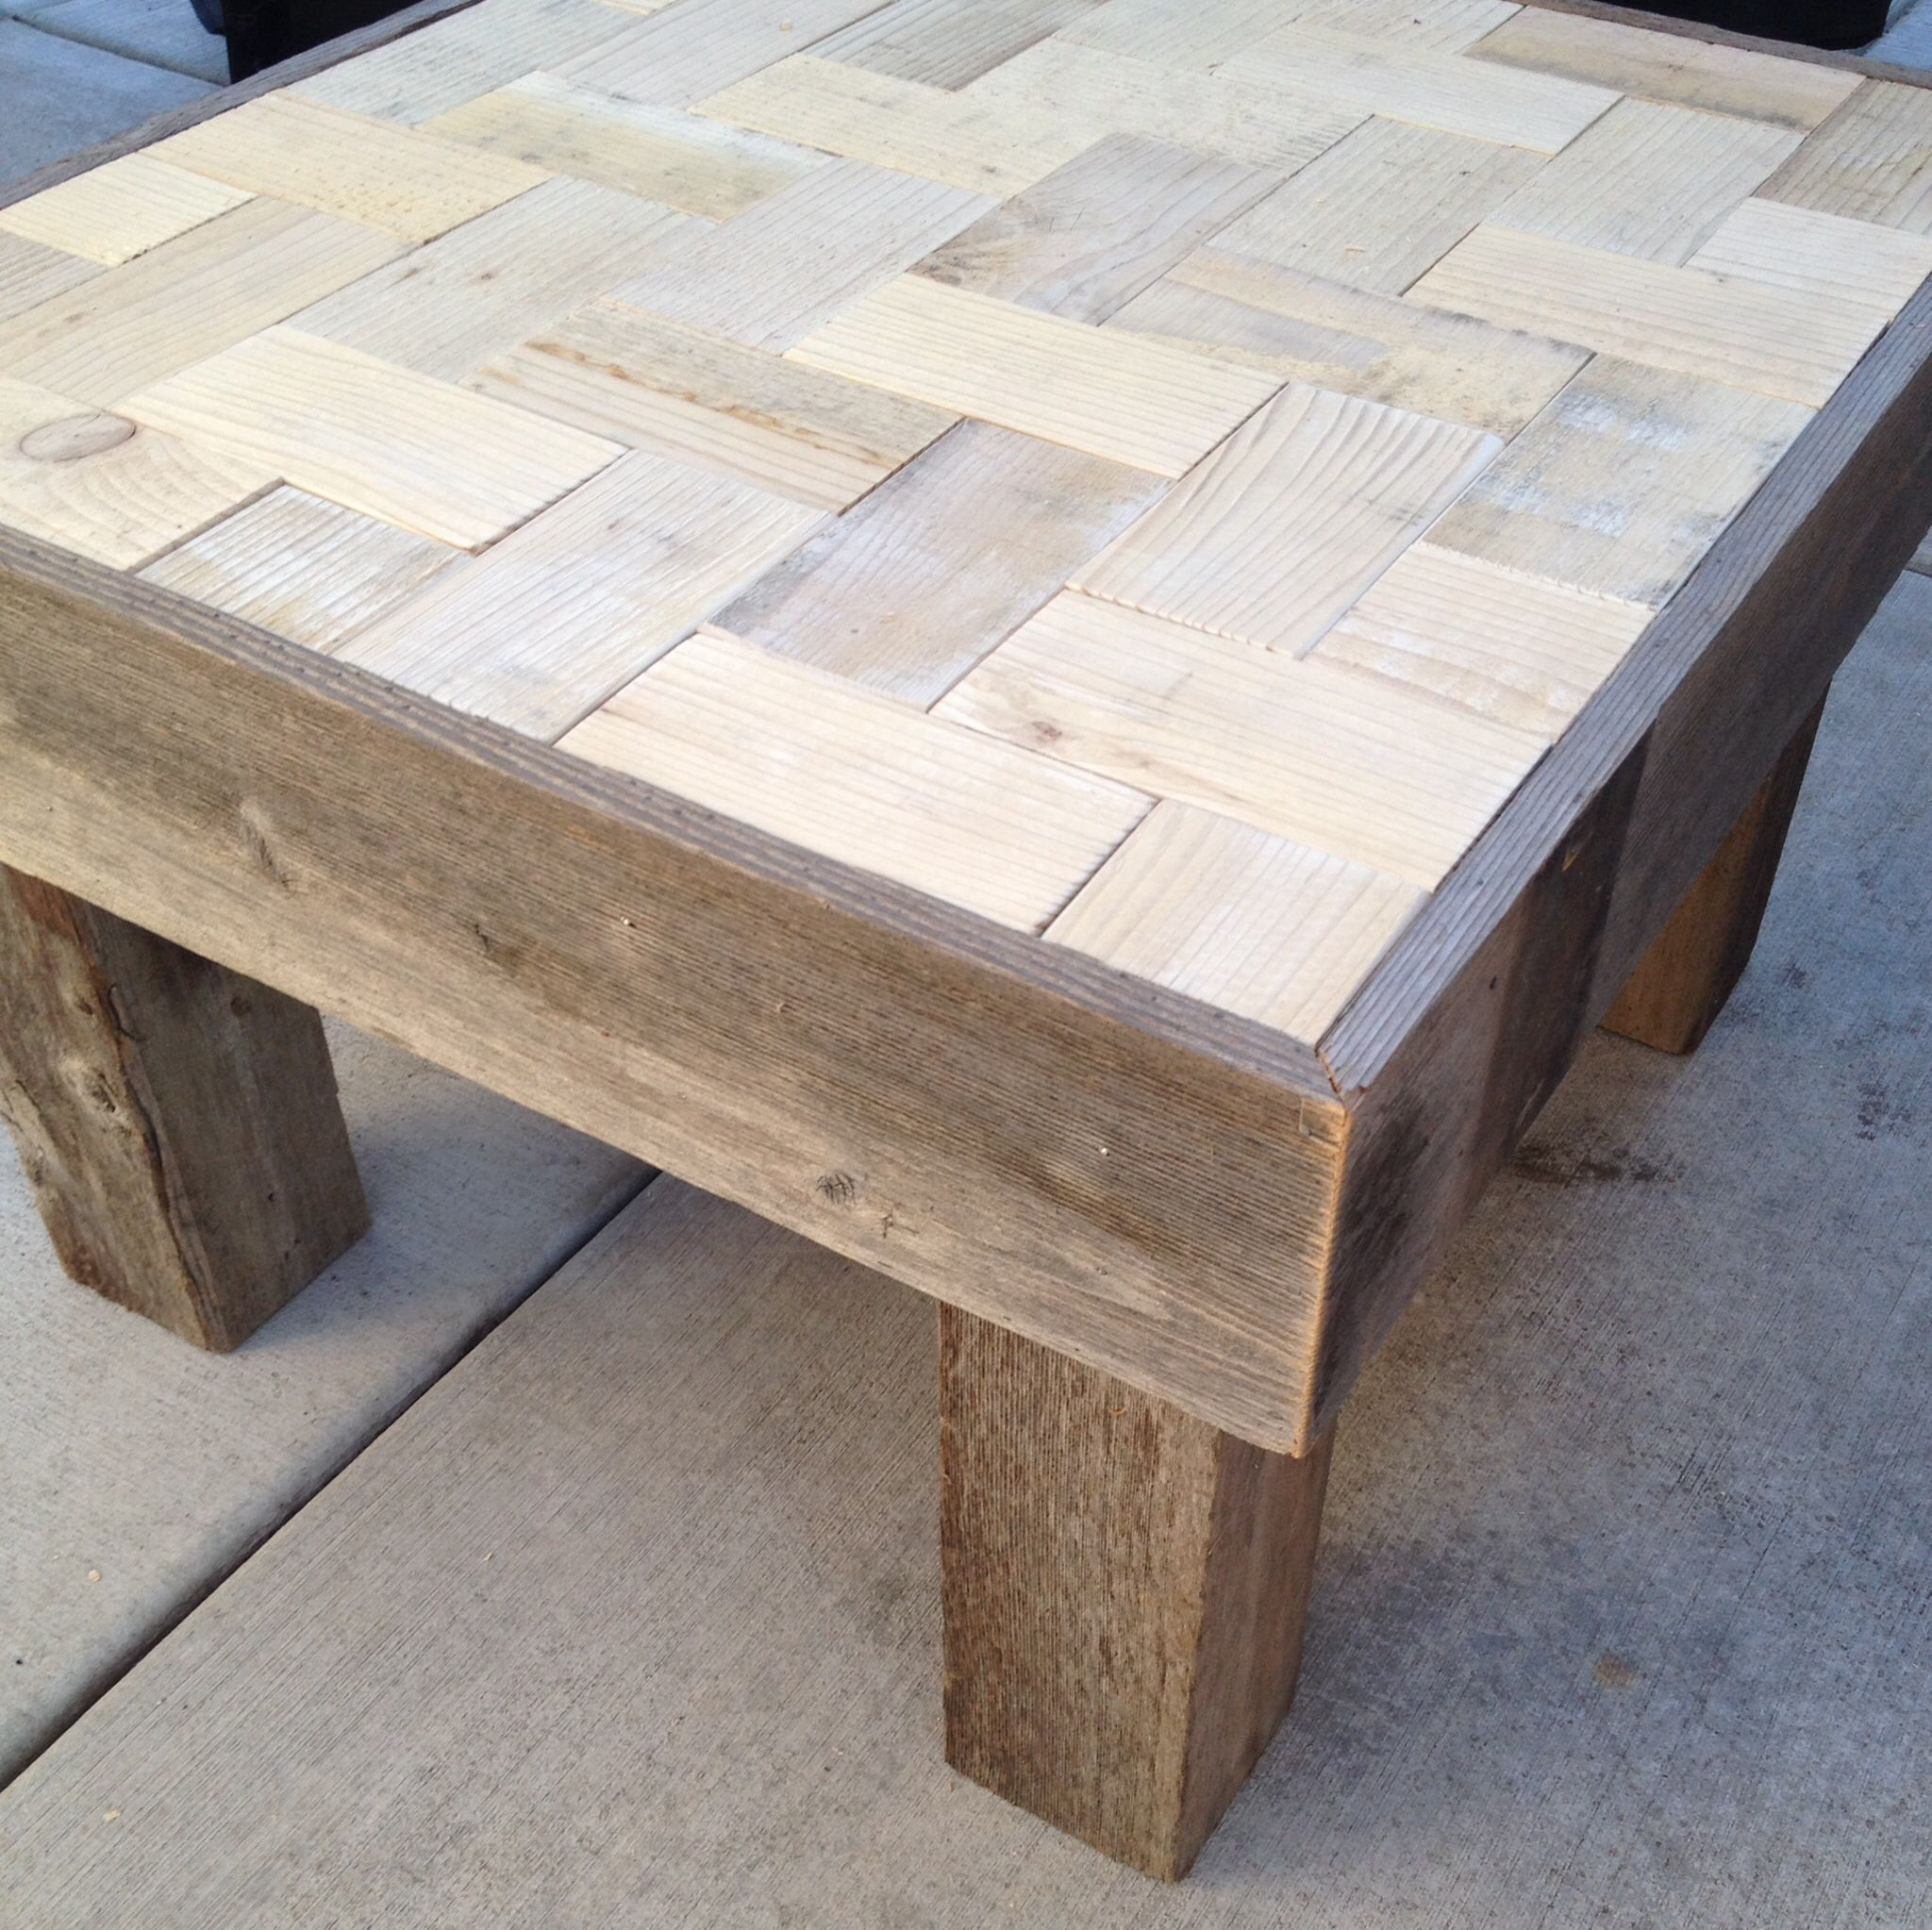 Small Coffee Table Made From A Pallet And Old Fence Slats Small Coffee Table Fence Slats Old Fences [ 2046 x 2048 Pixel ]